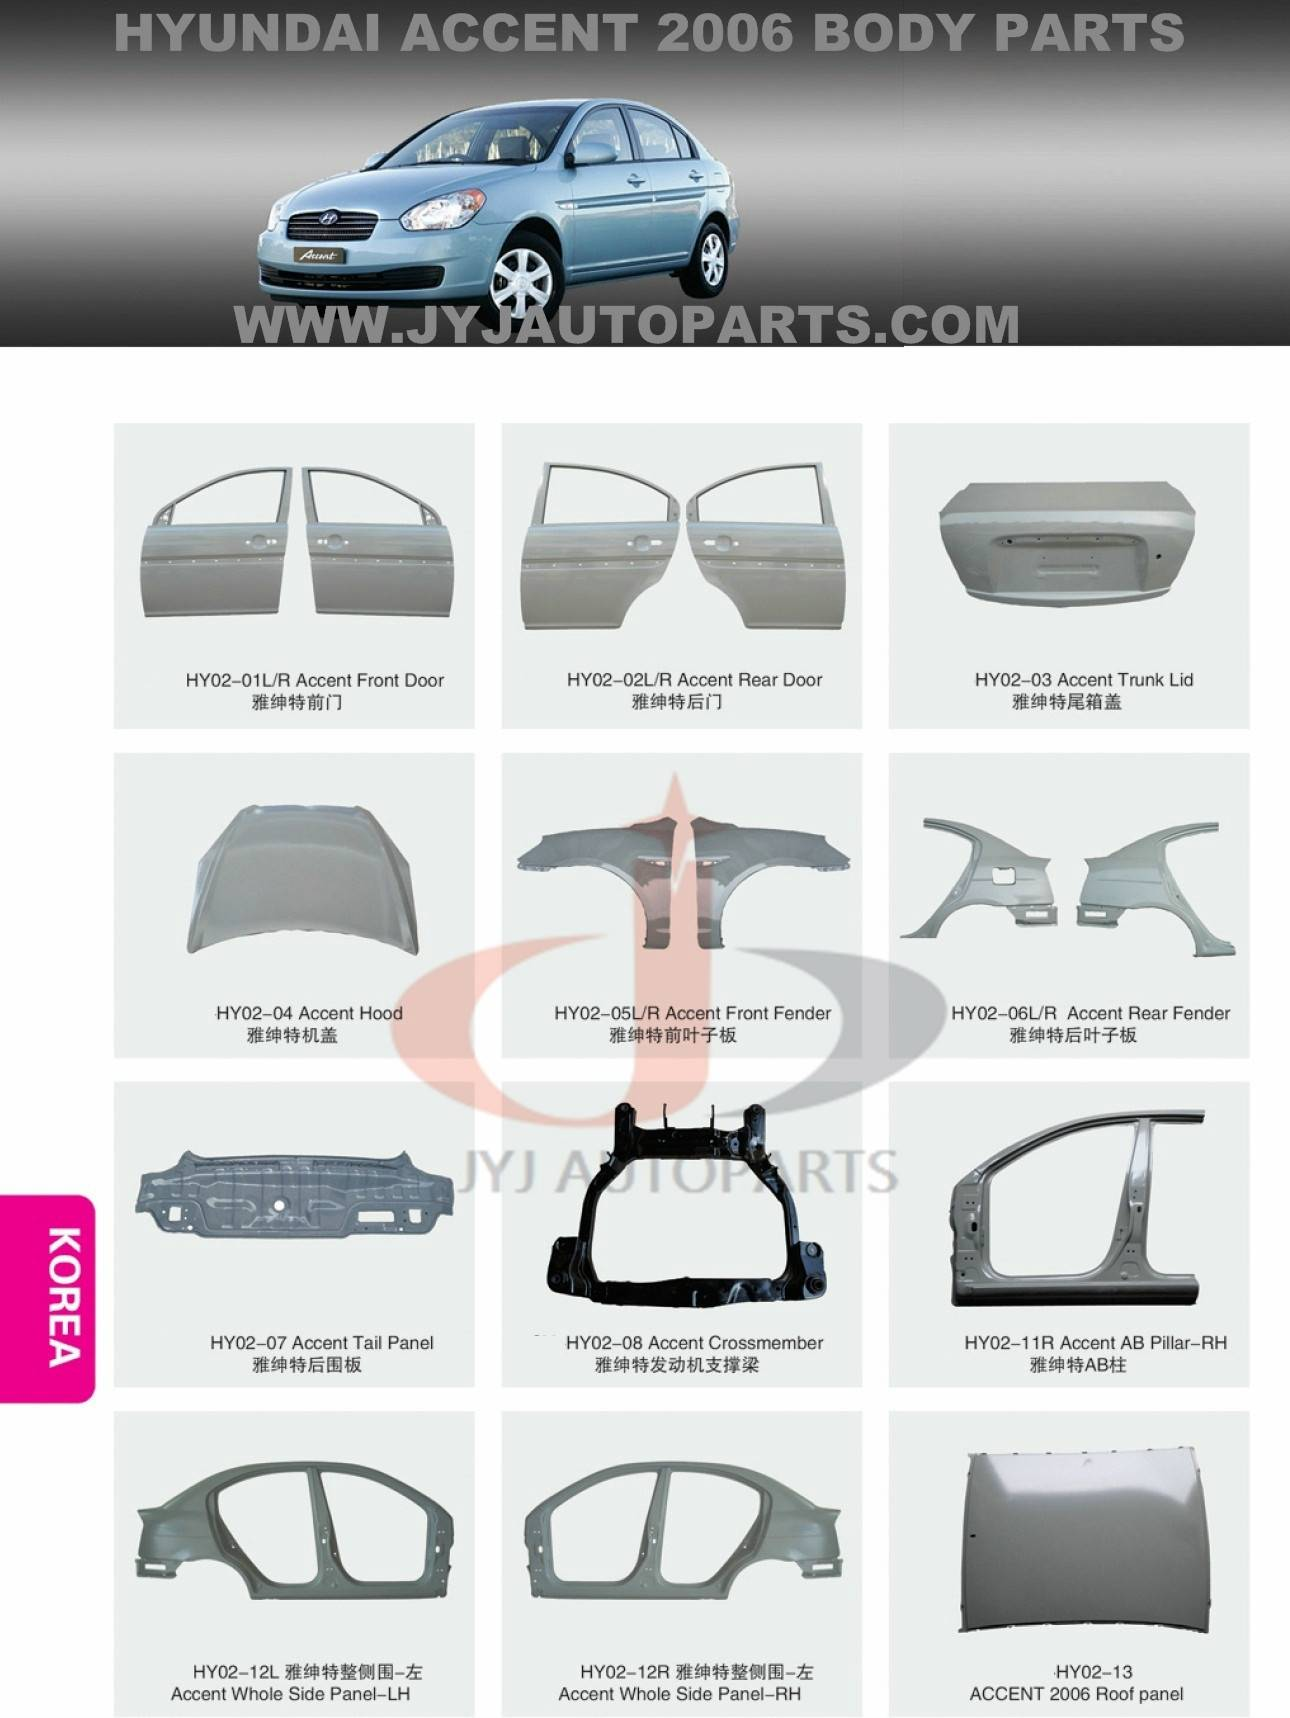 Quality metal body parts for HYUNDAI ACCNET